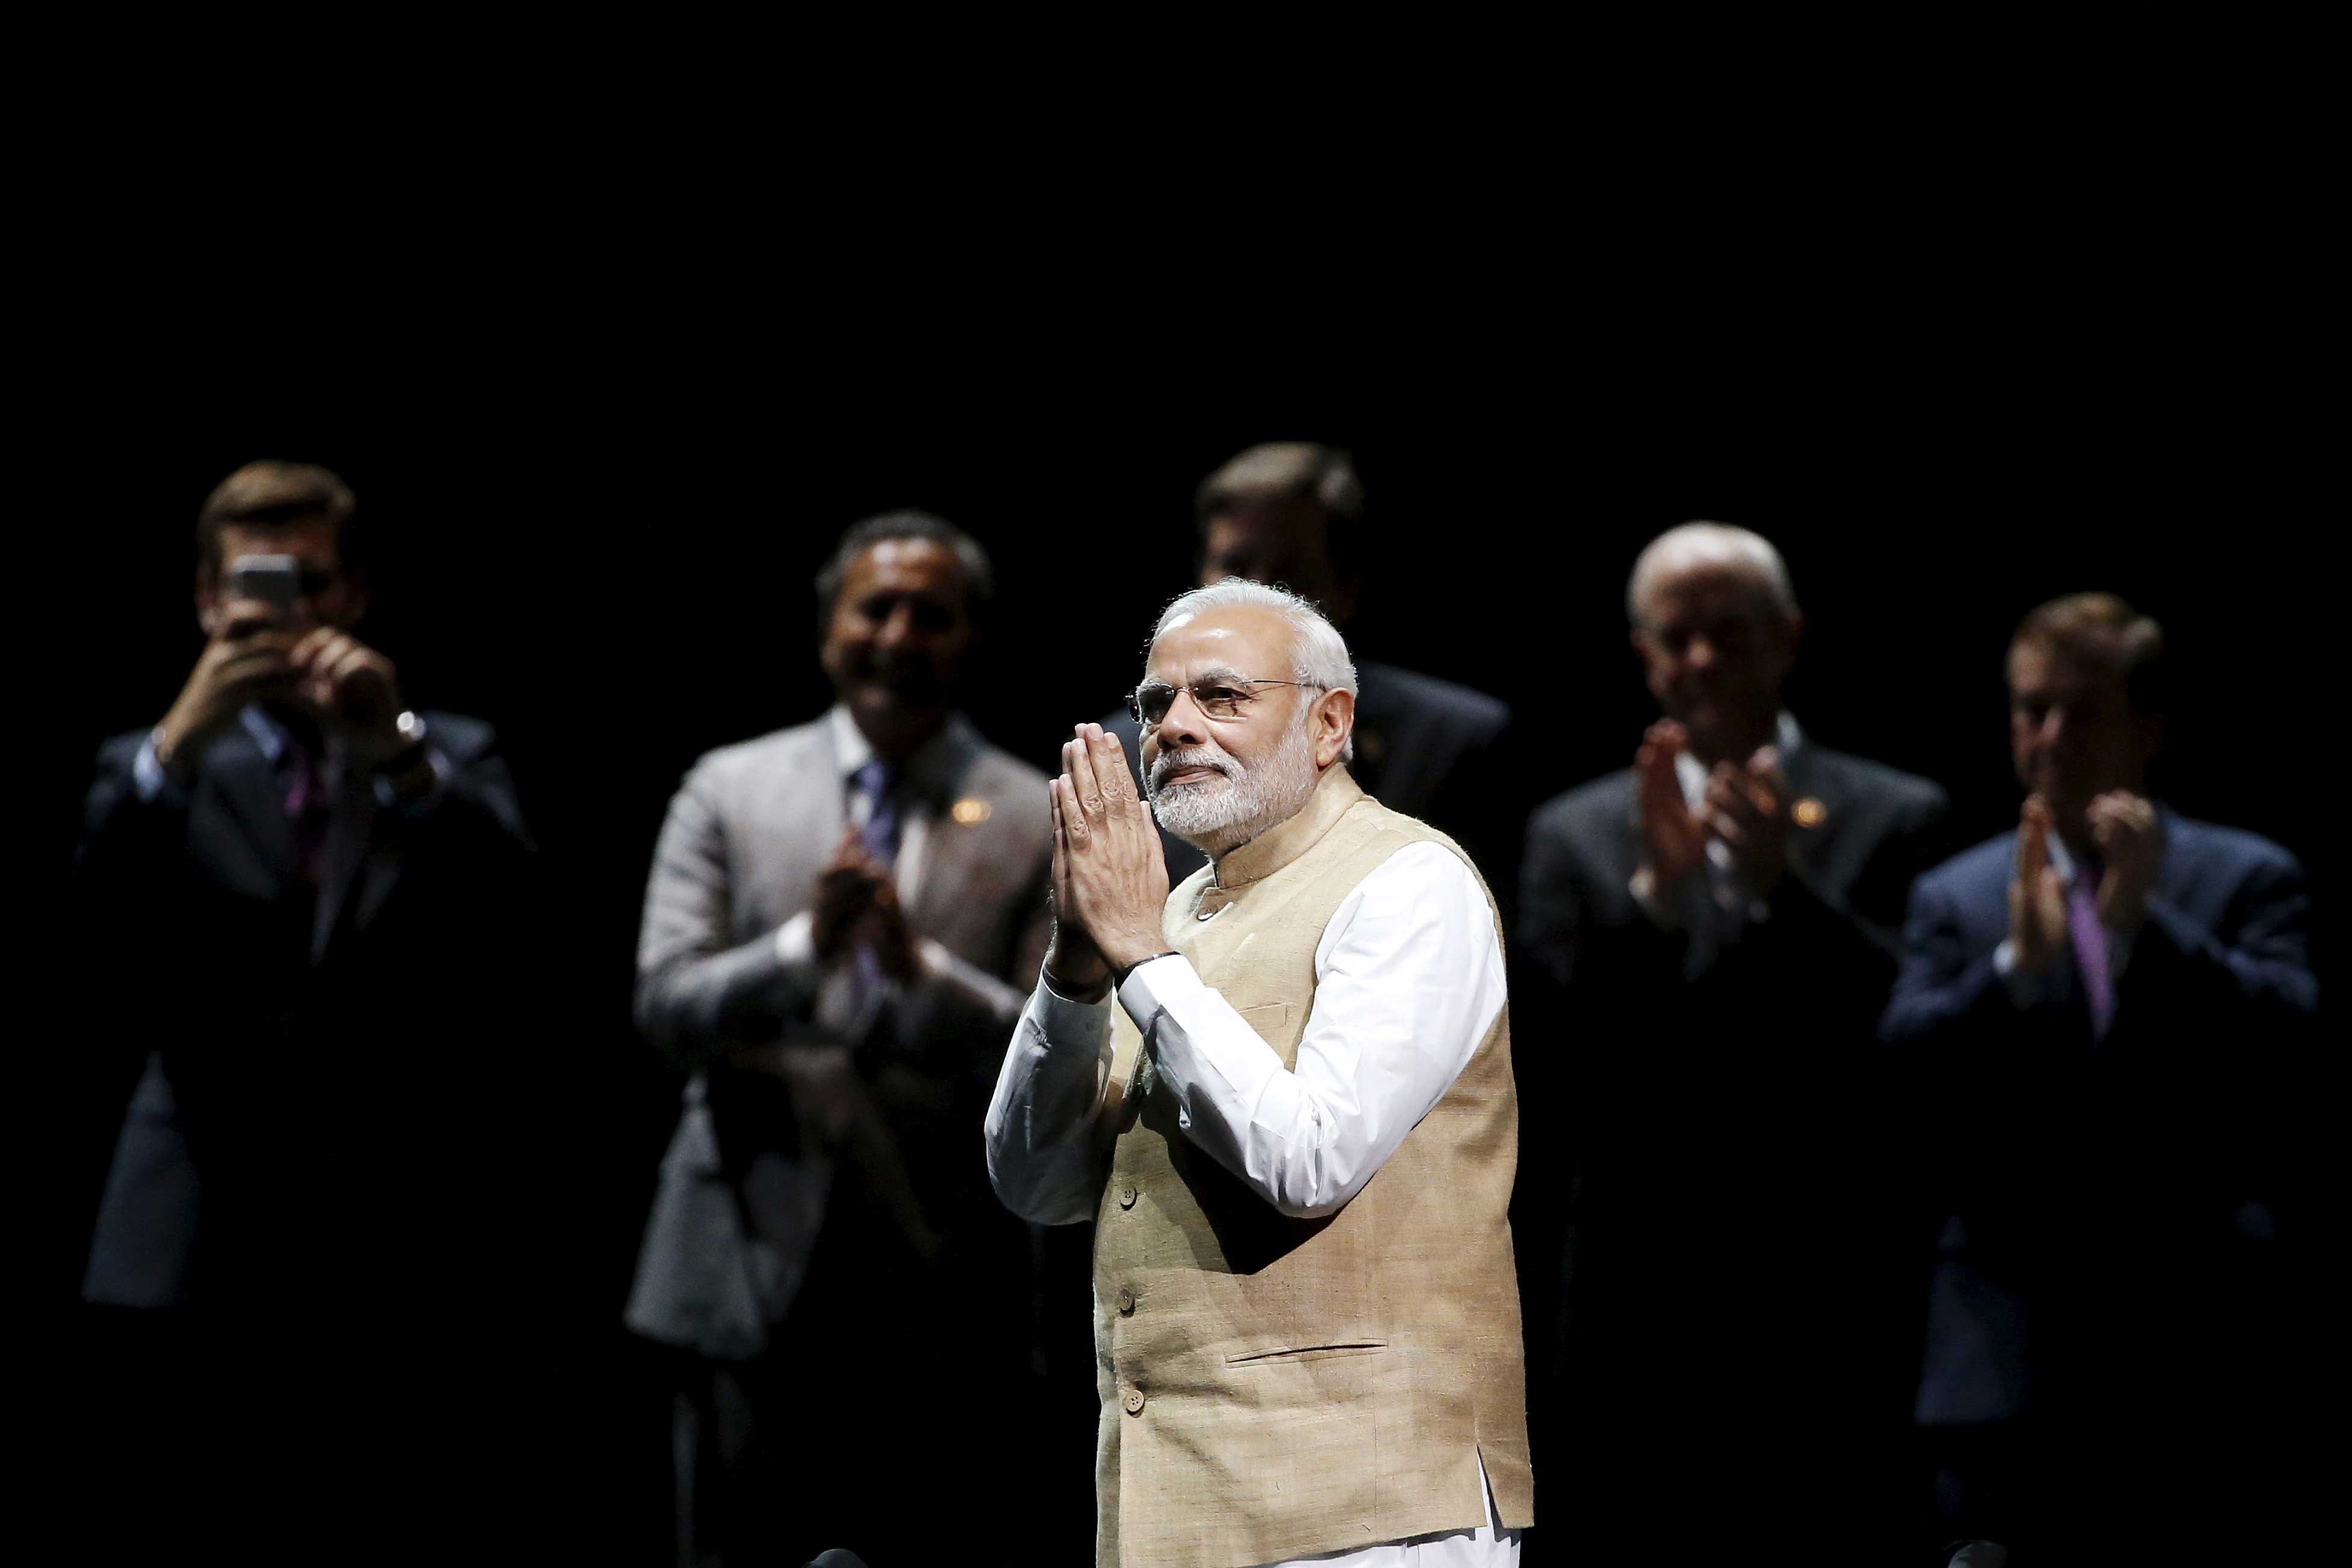 Indian PM Modi gestures during a community reception at SAP Center in San Jose, California